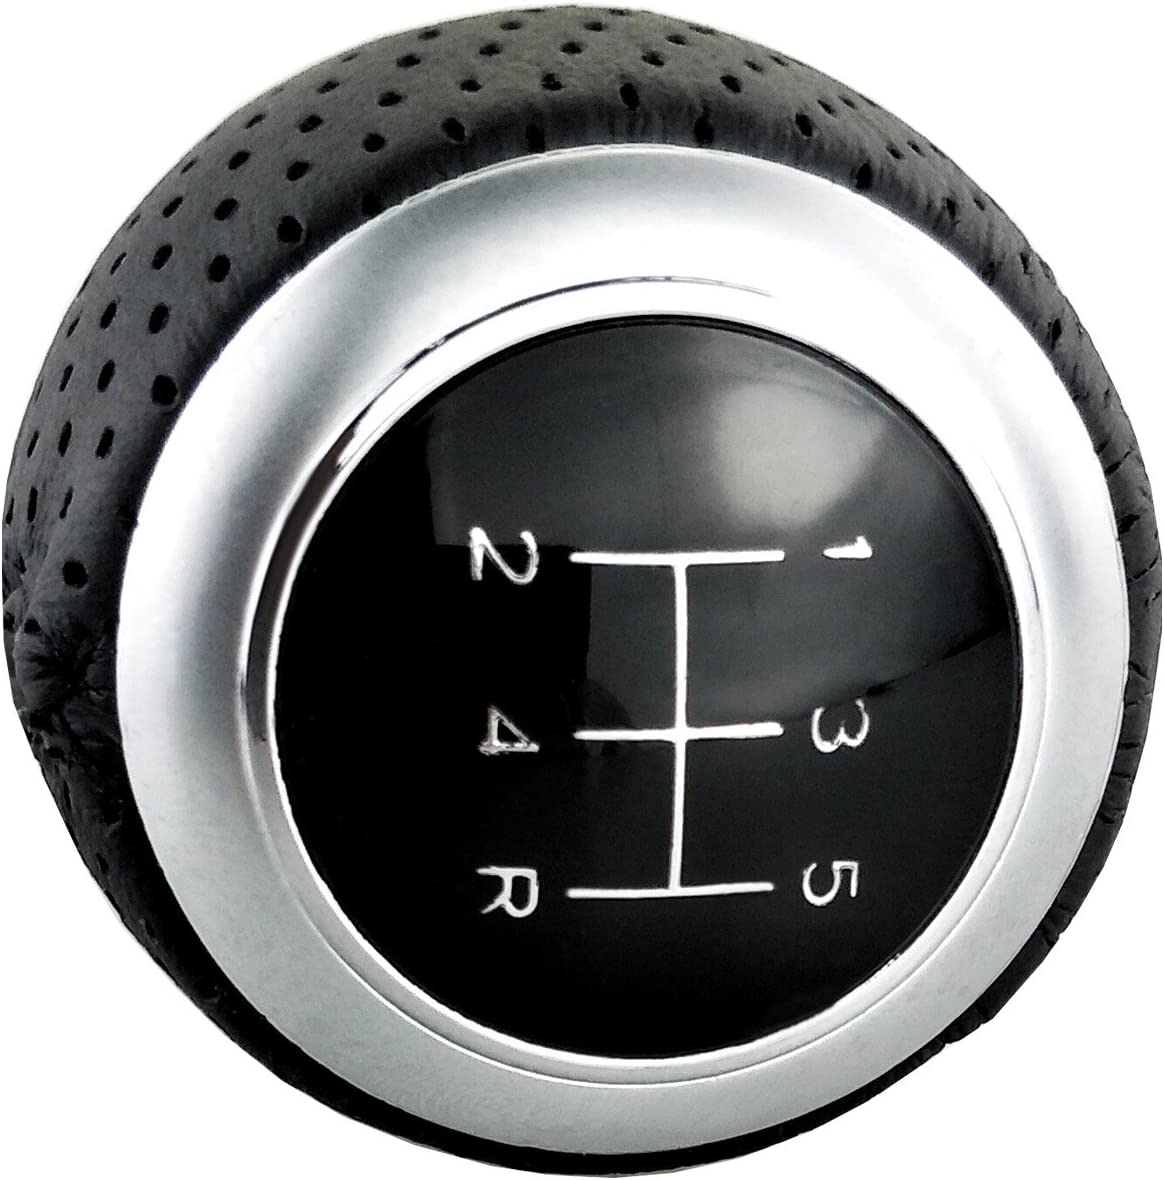 Lunsom Leather Stick Shifter Knob Manual 5 Speed Ball Car Gear Shift Head Shifting Lever Handle Fit Universal Auto Transmission Vehicle Black